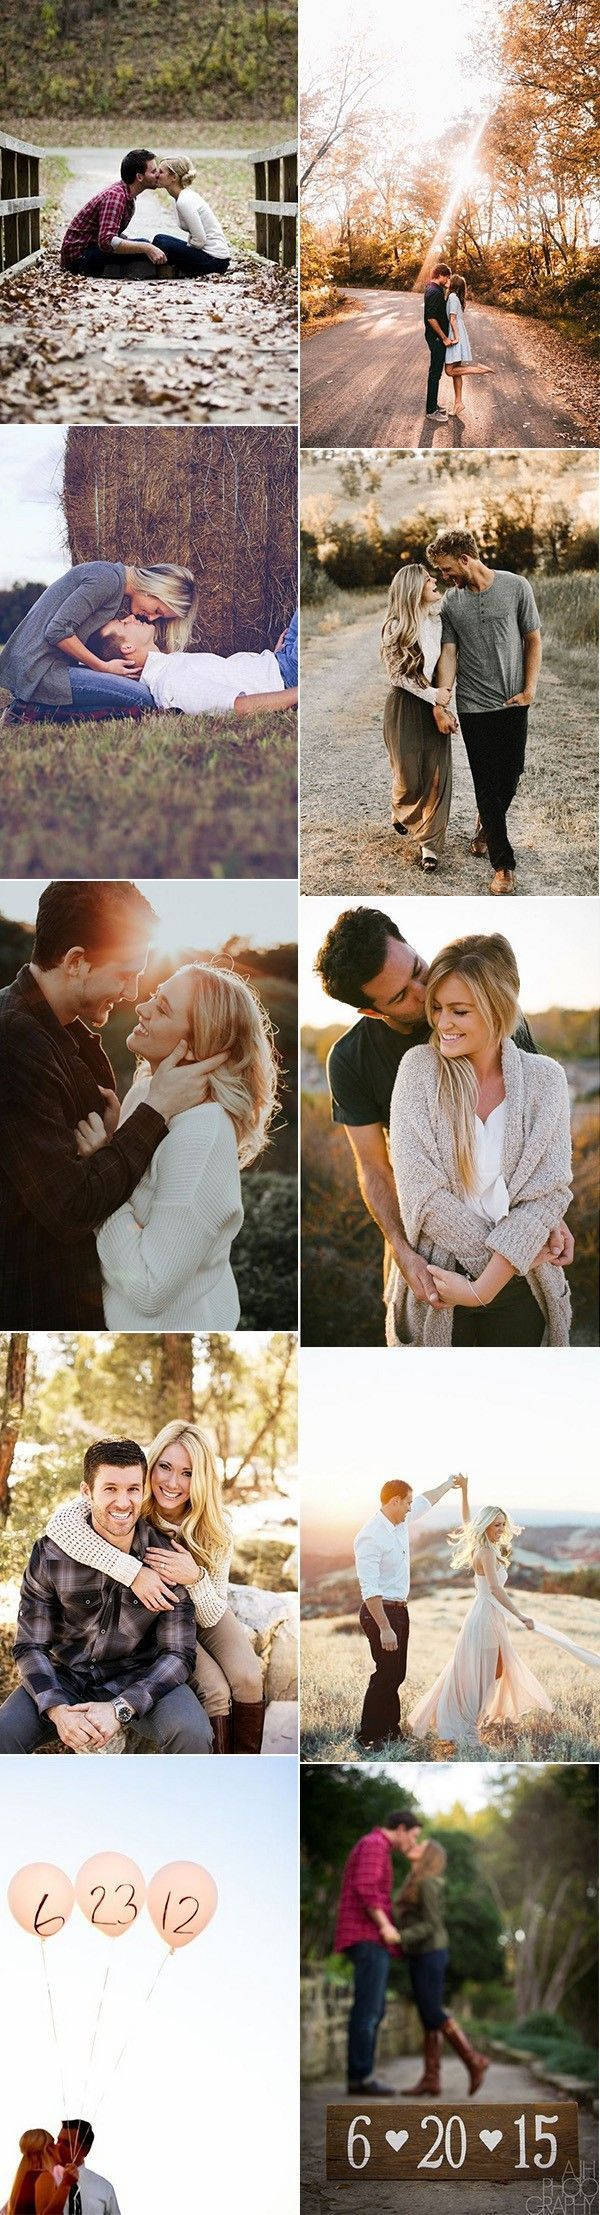 Top 20 Engagement Photo Ideas to Love – #Engagemen…